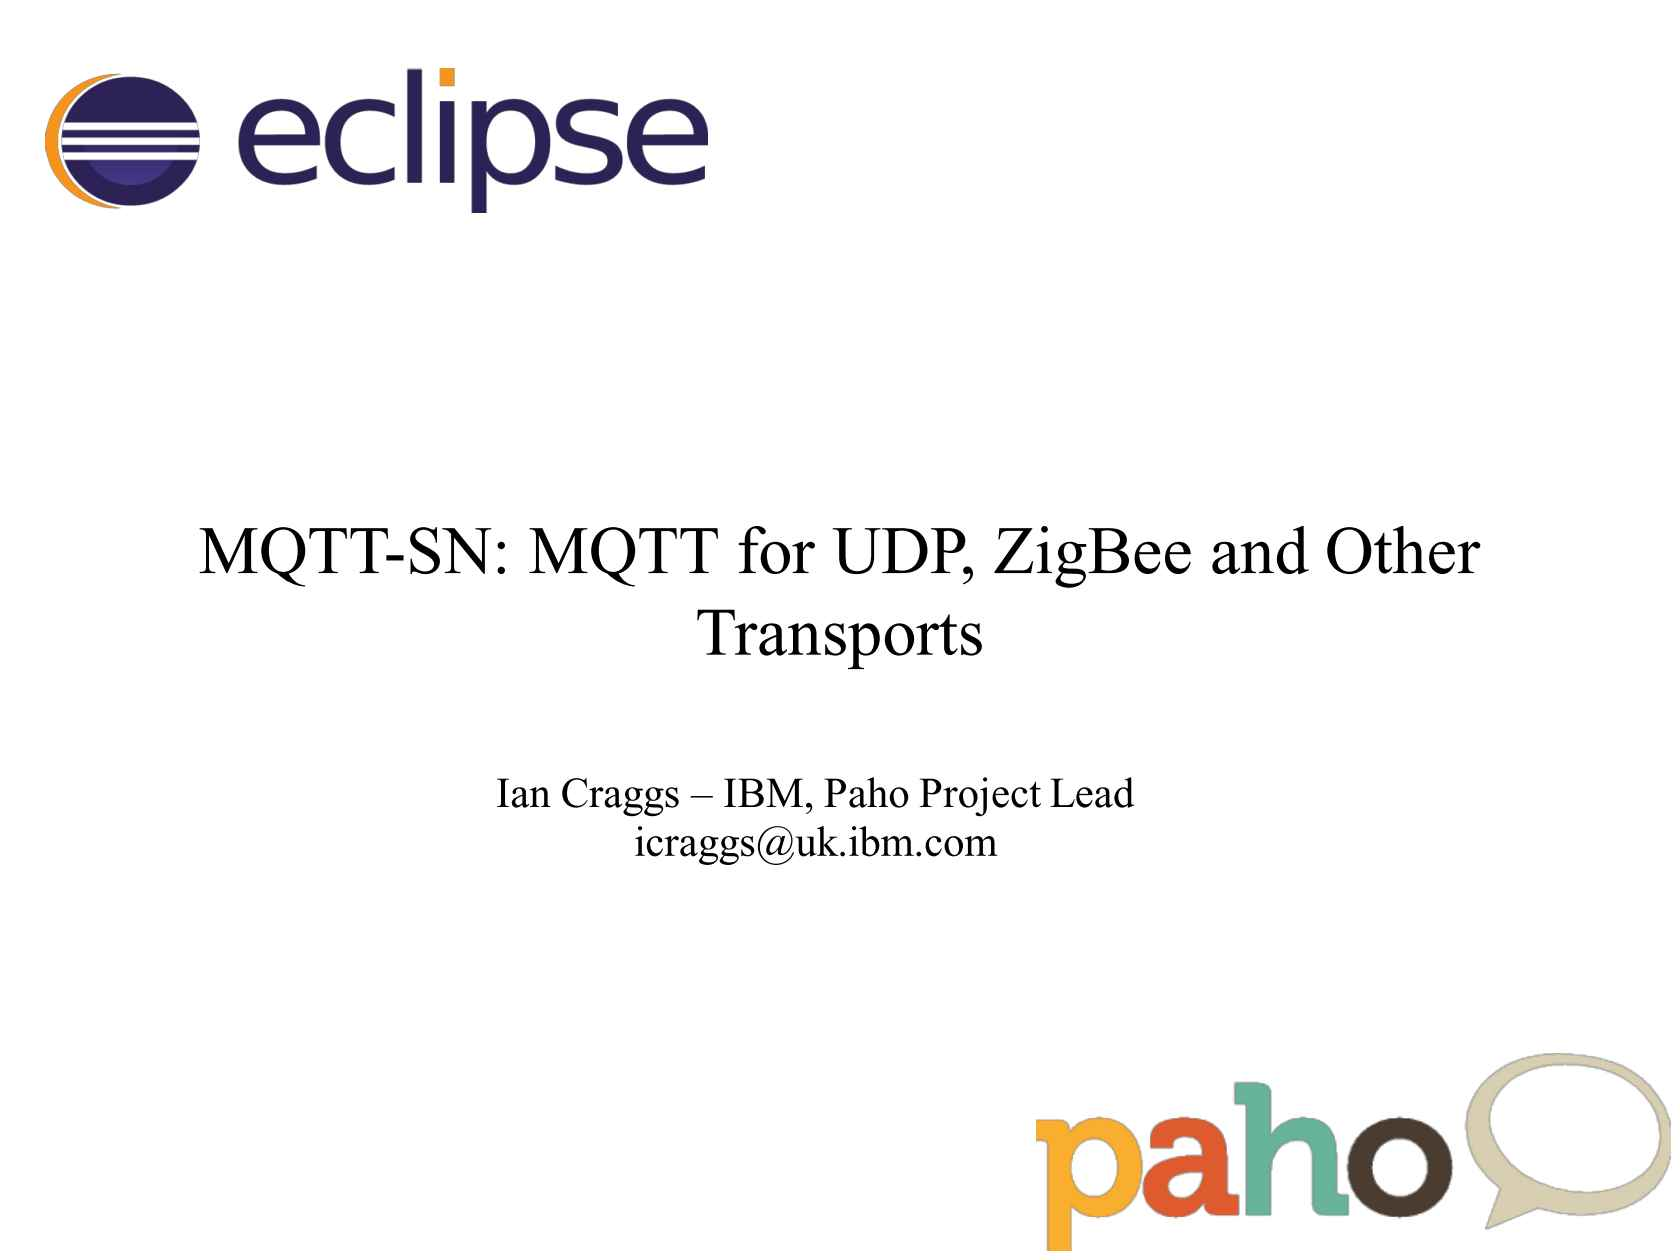 MQTT-SN: MQTT for UDP, ZigBee and Other Transports